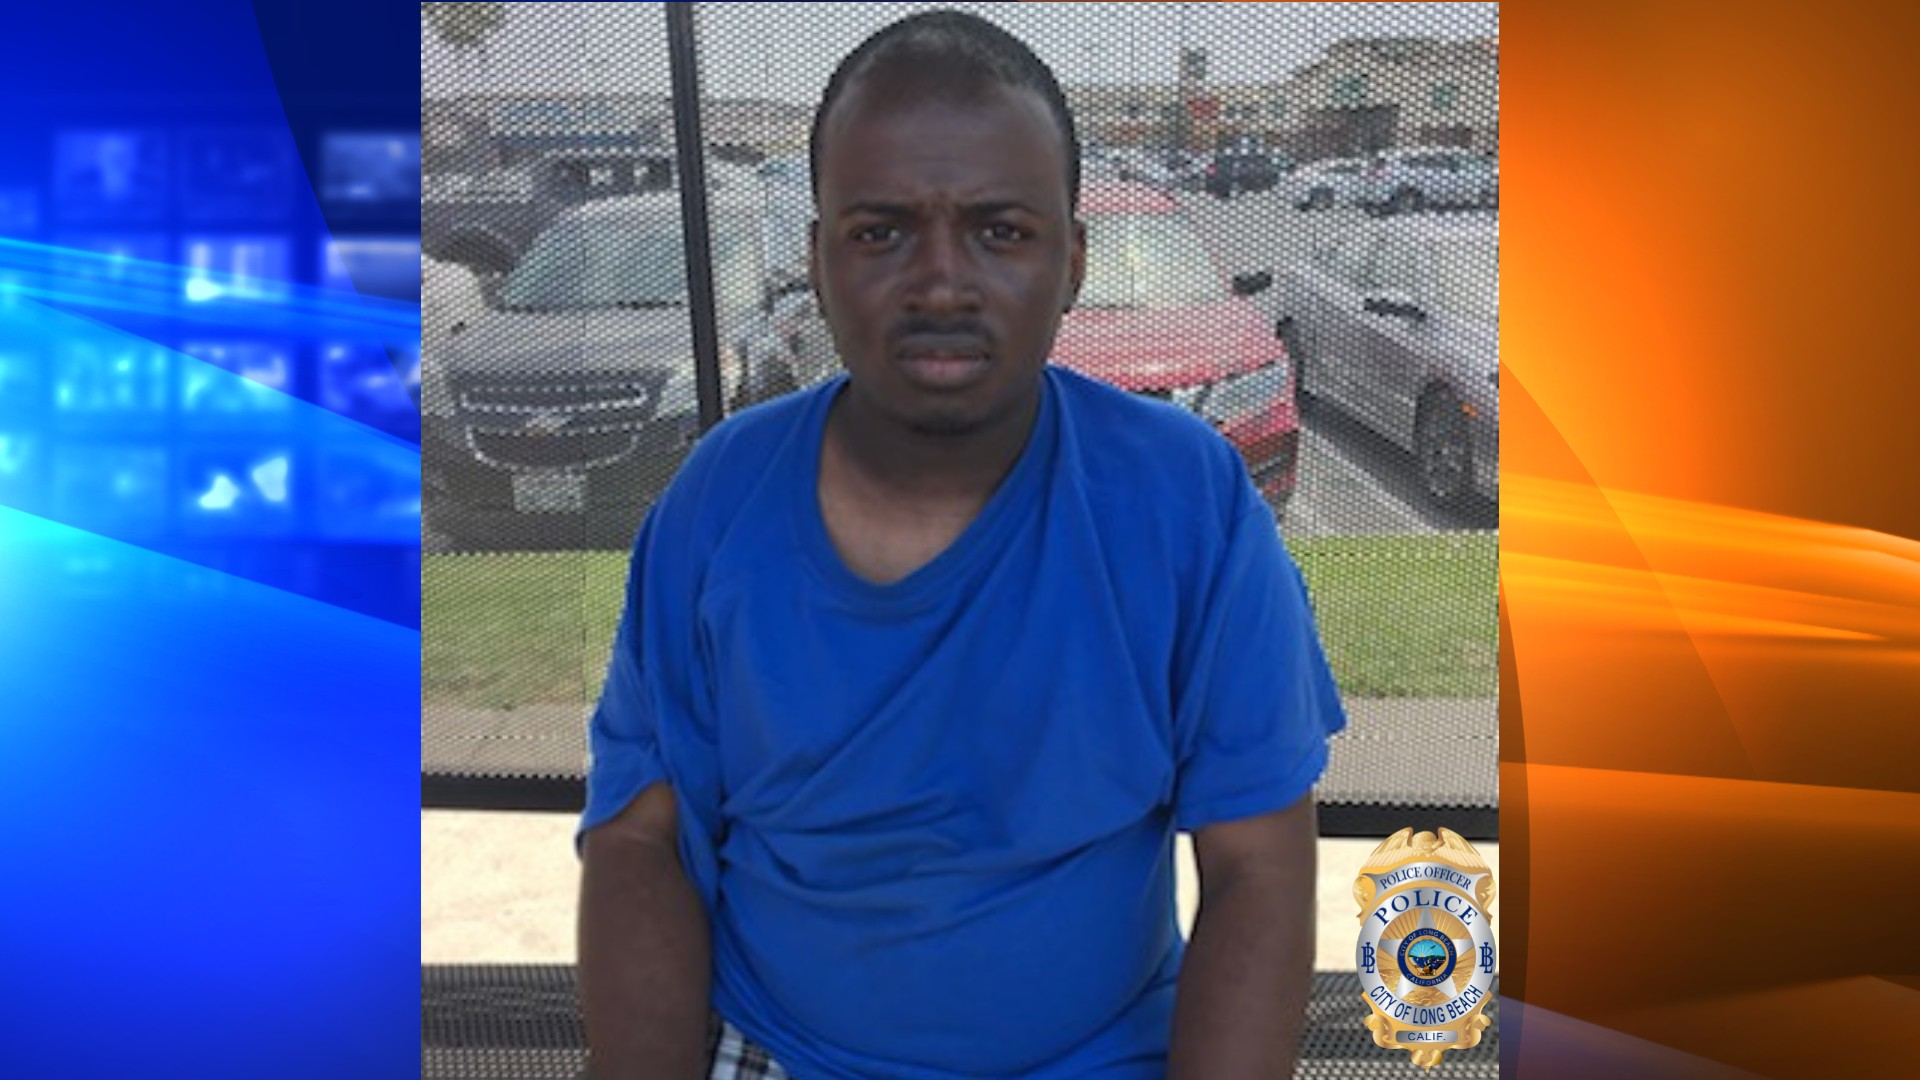 Davontay Marquise Clark, 26, shown in this undated photo, is missing, and the Long Beach Police Department is asking for help finding him. (LBPD)